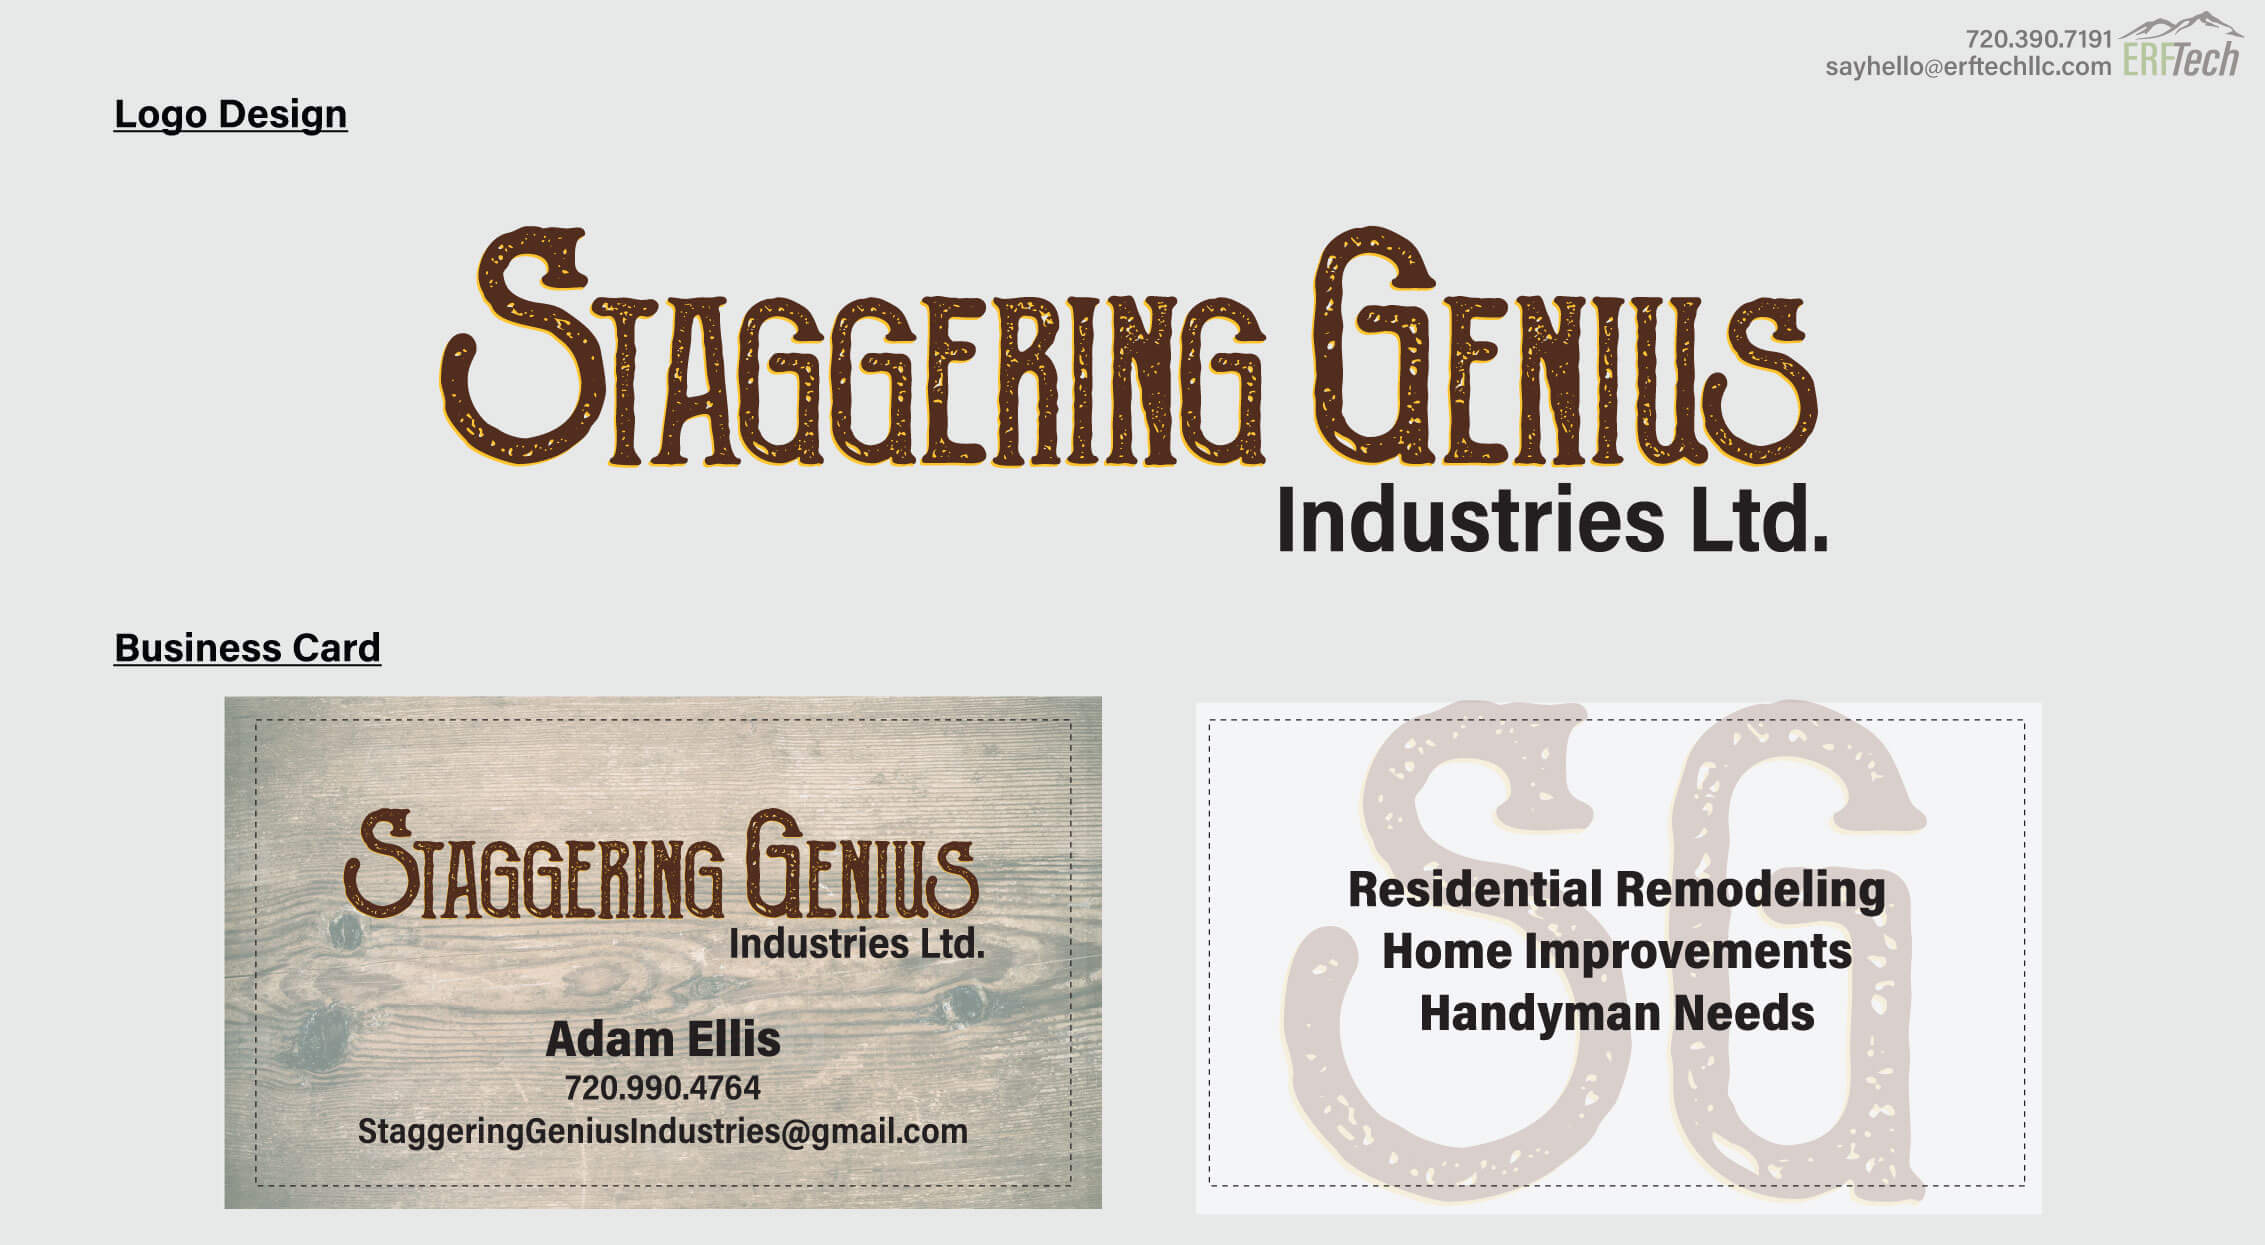 Full-Service Marketing for Staggering Genius in Littleton, CO